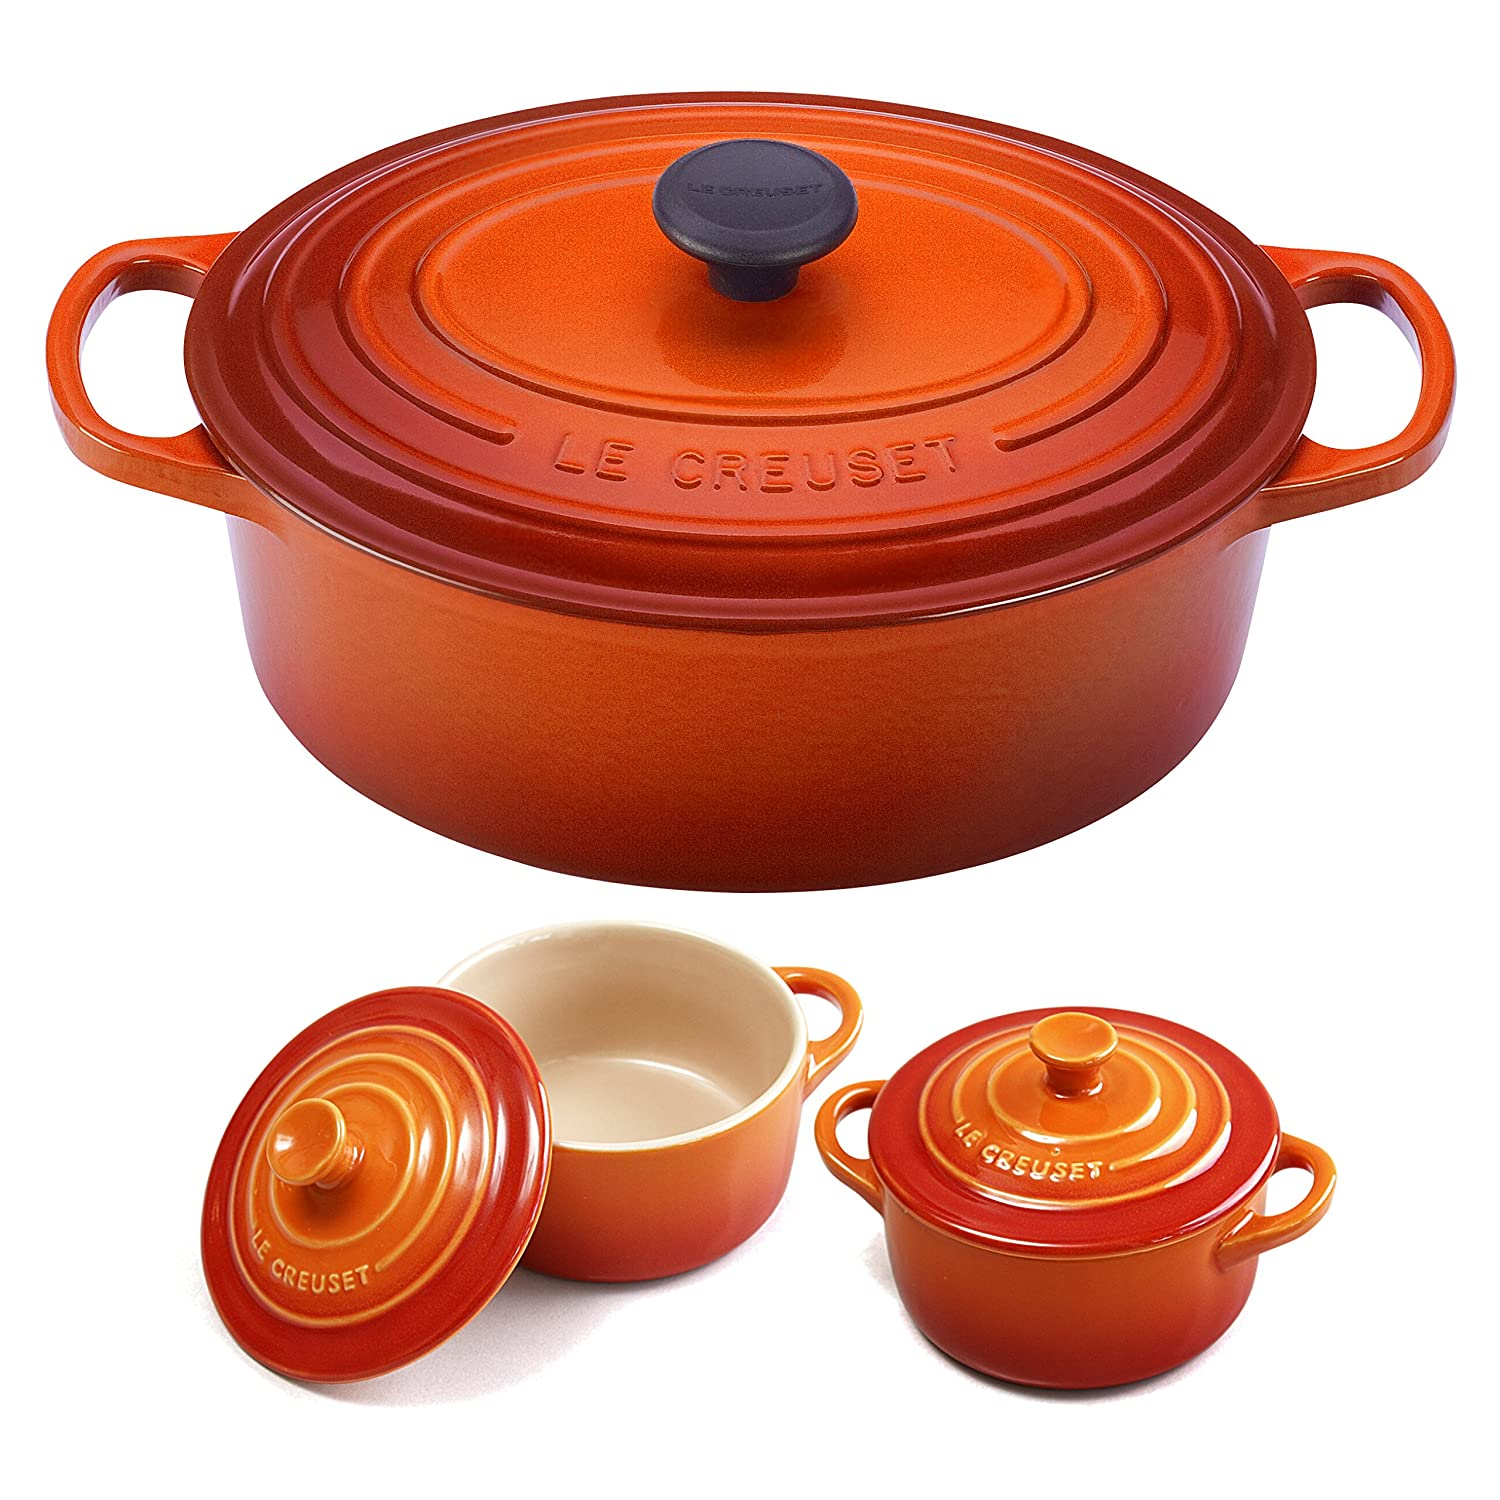 Le Creuset Signature Flame Enameled Cast Iron 5 Quart Oval French Oven with 2 Free Stoneware Cocottes